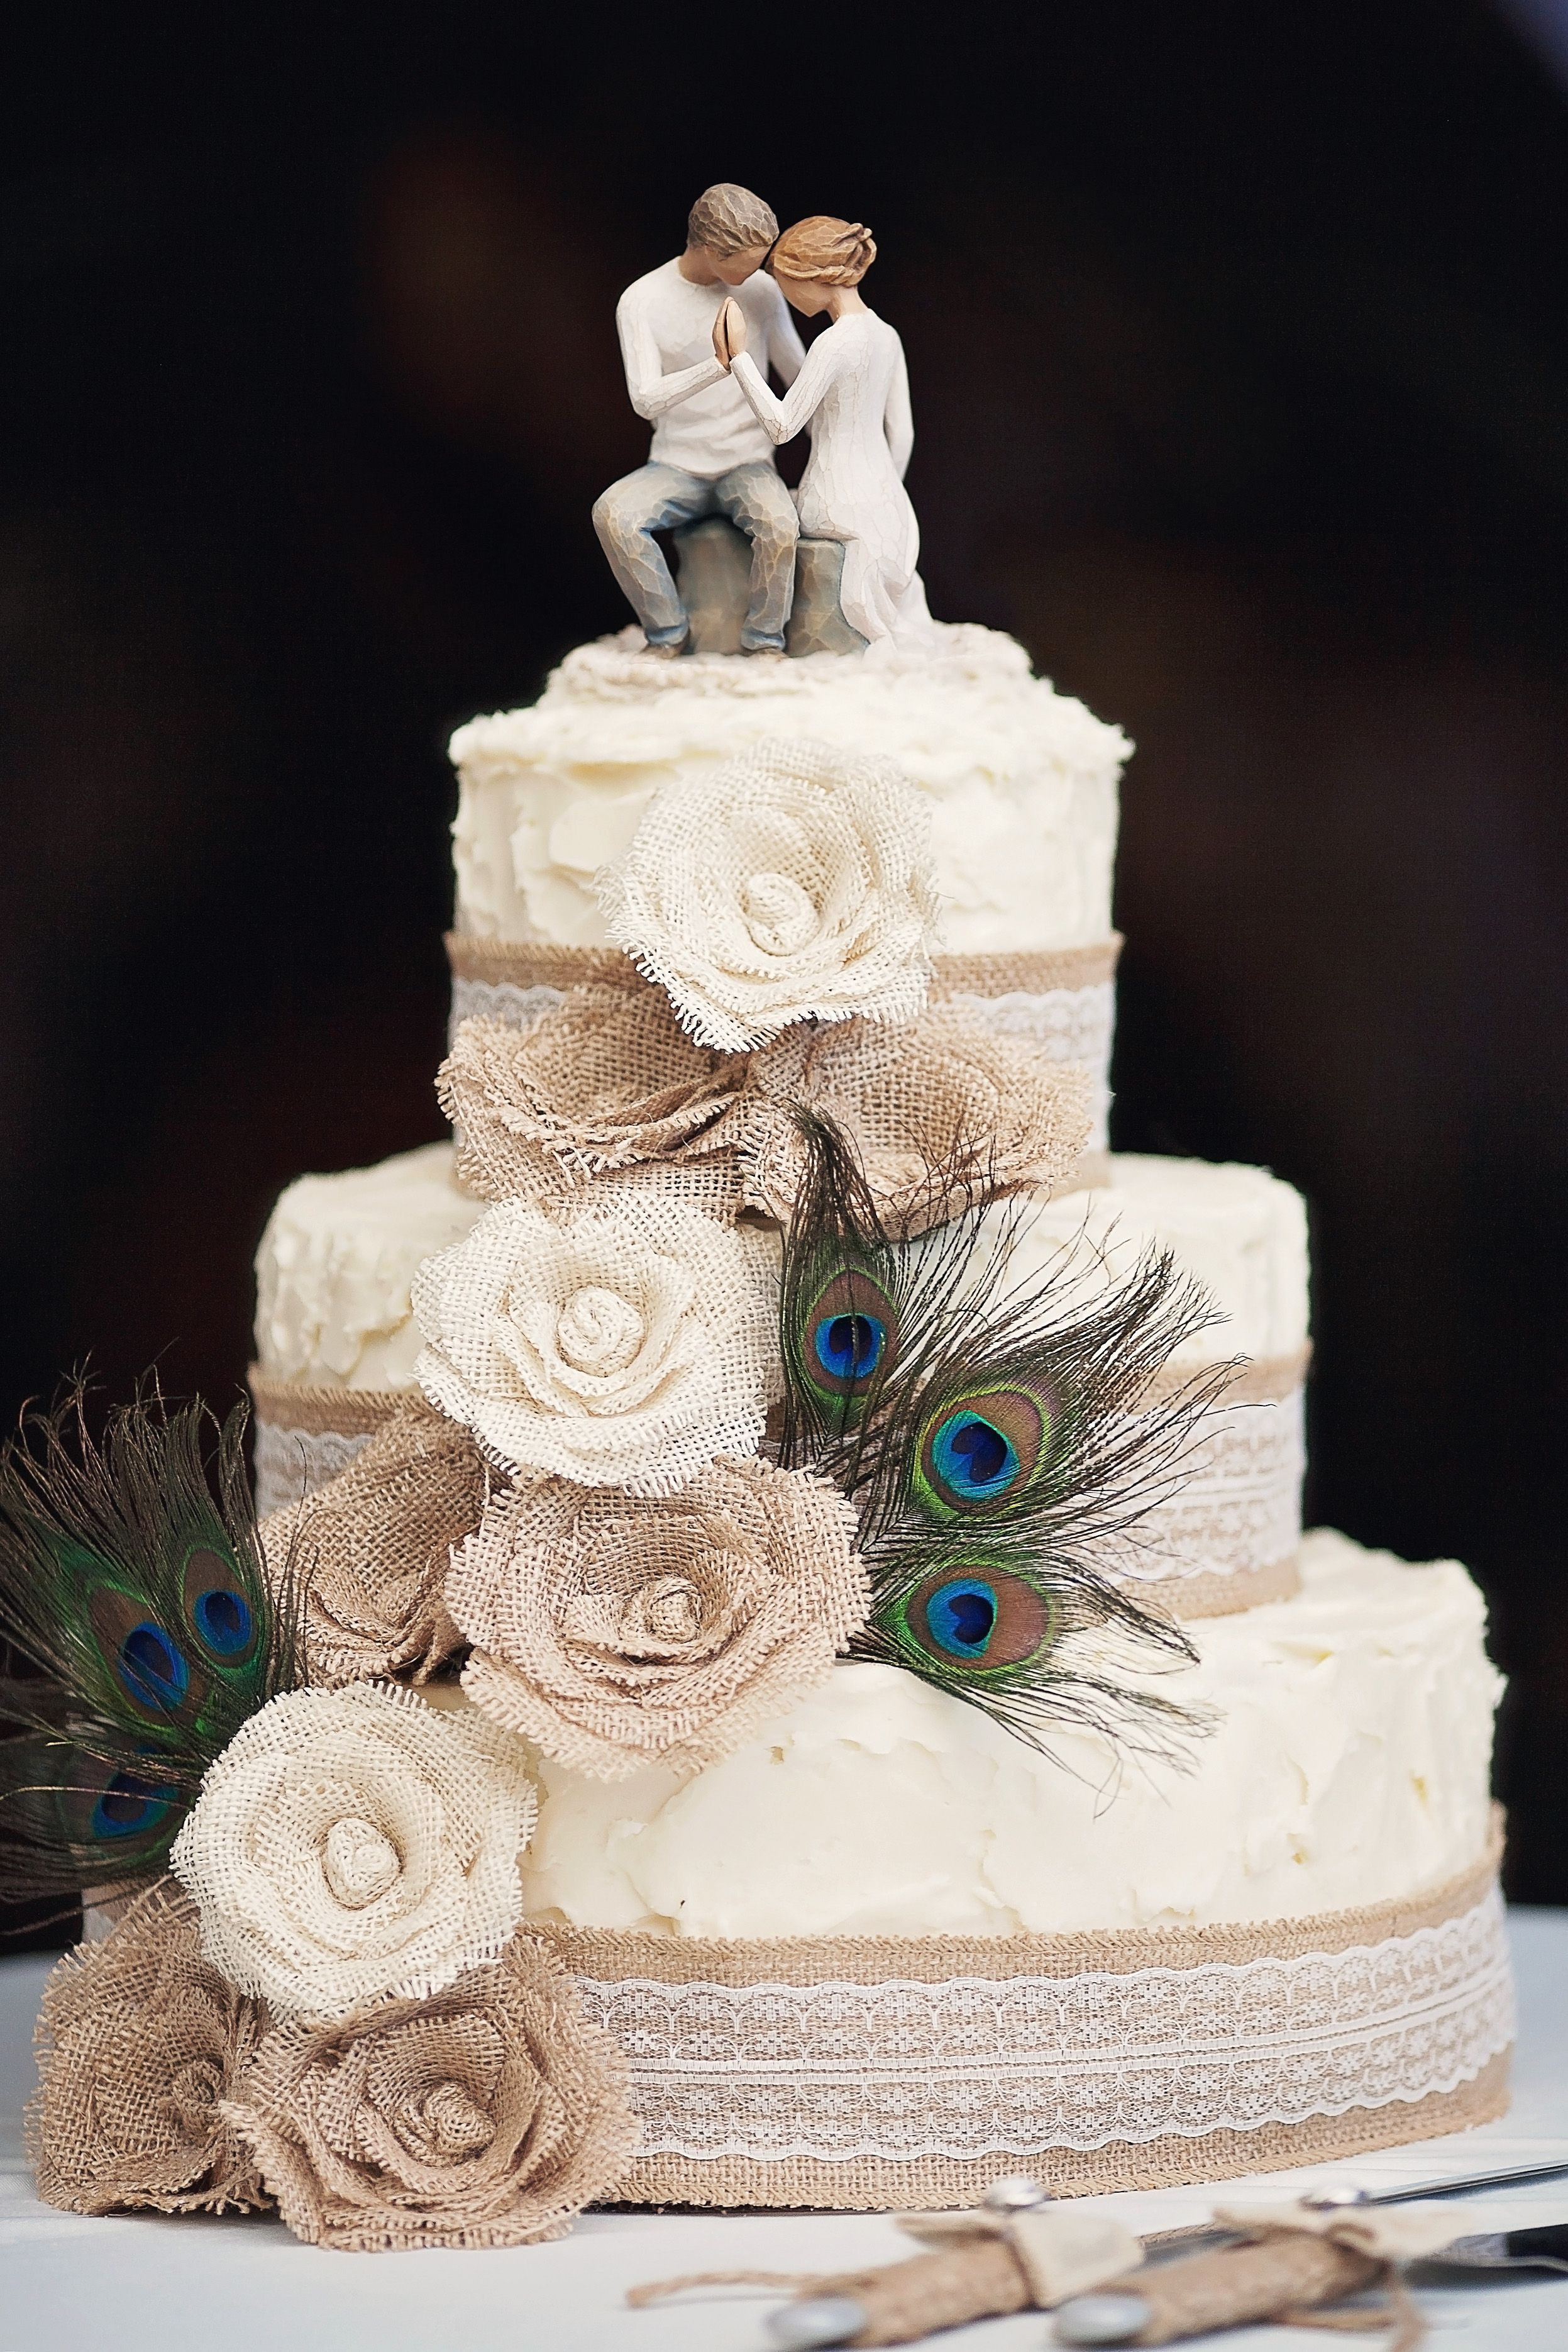 cake: burlap flowers, peacock feathers, burlap ribbon with lace